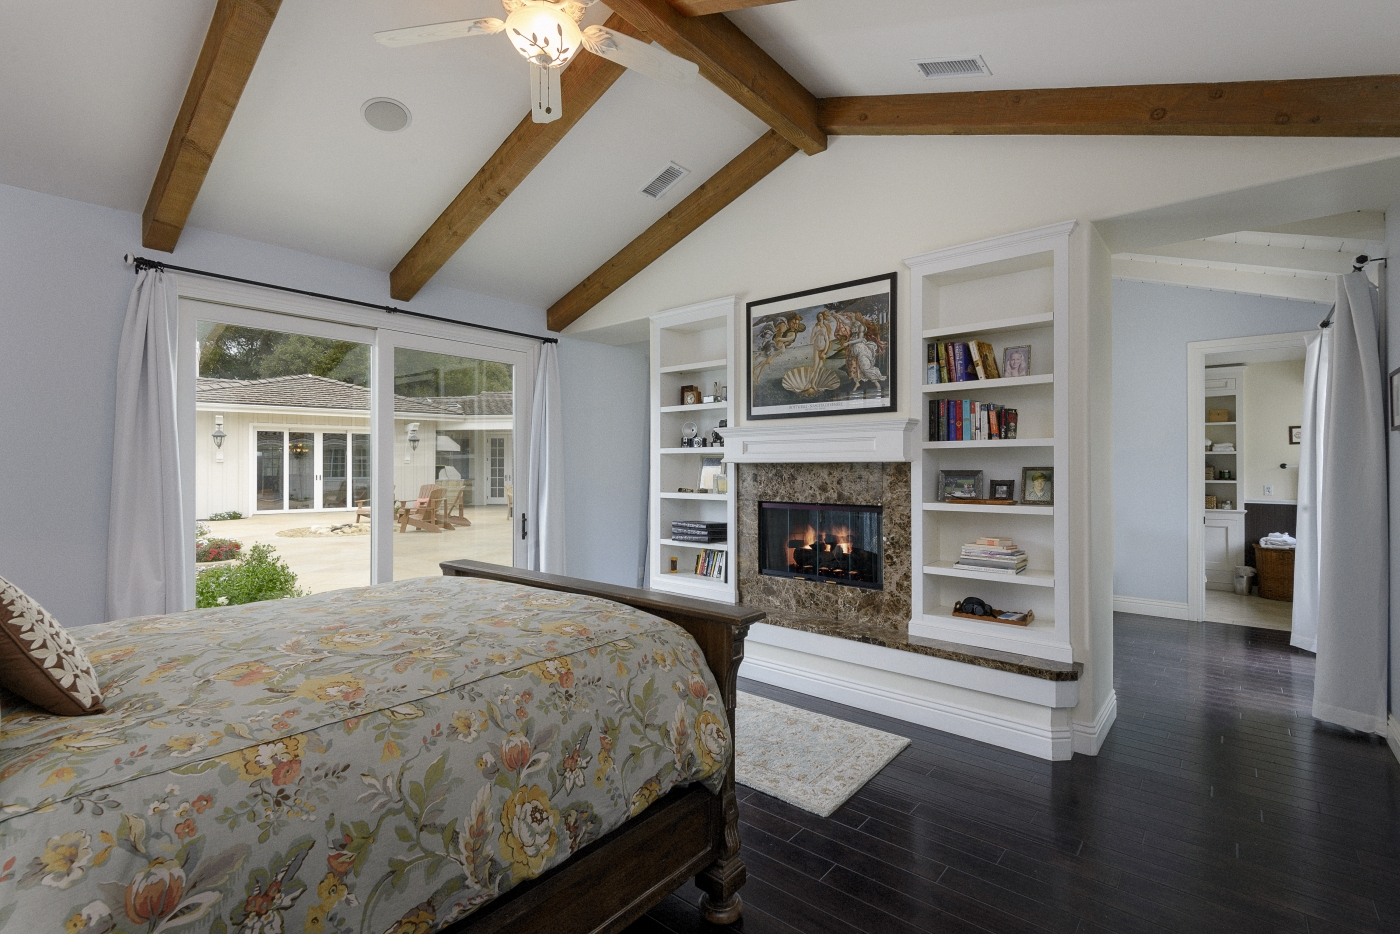 Master Bedroom Suite On Private End Of Home